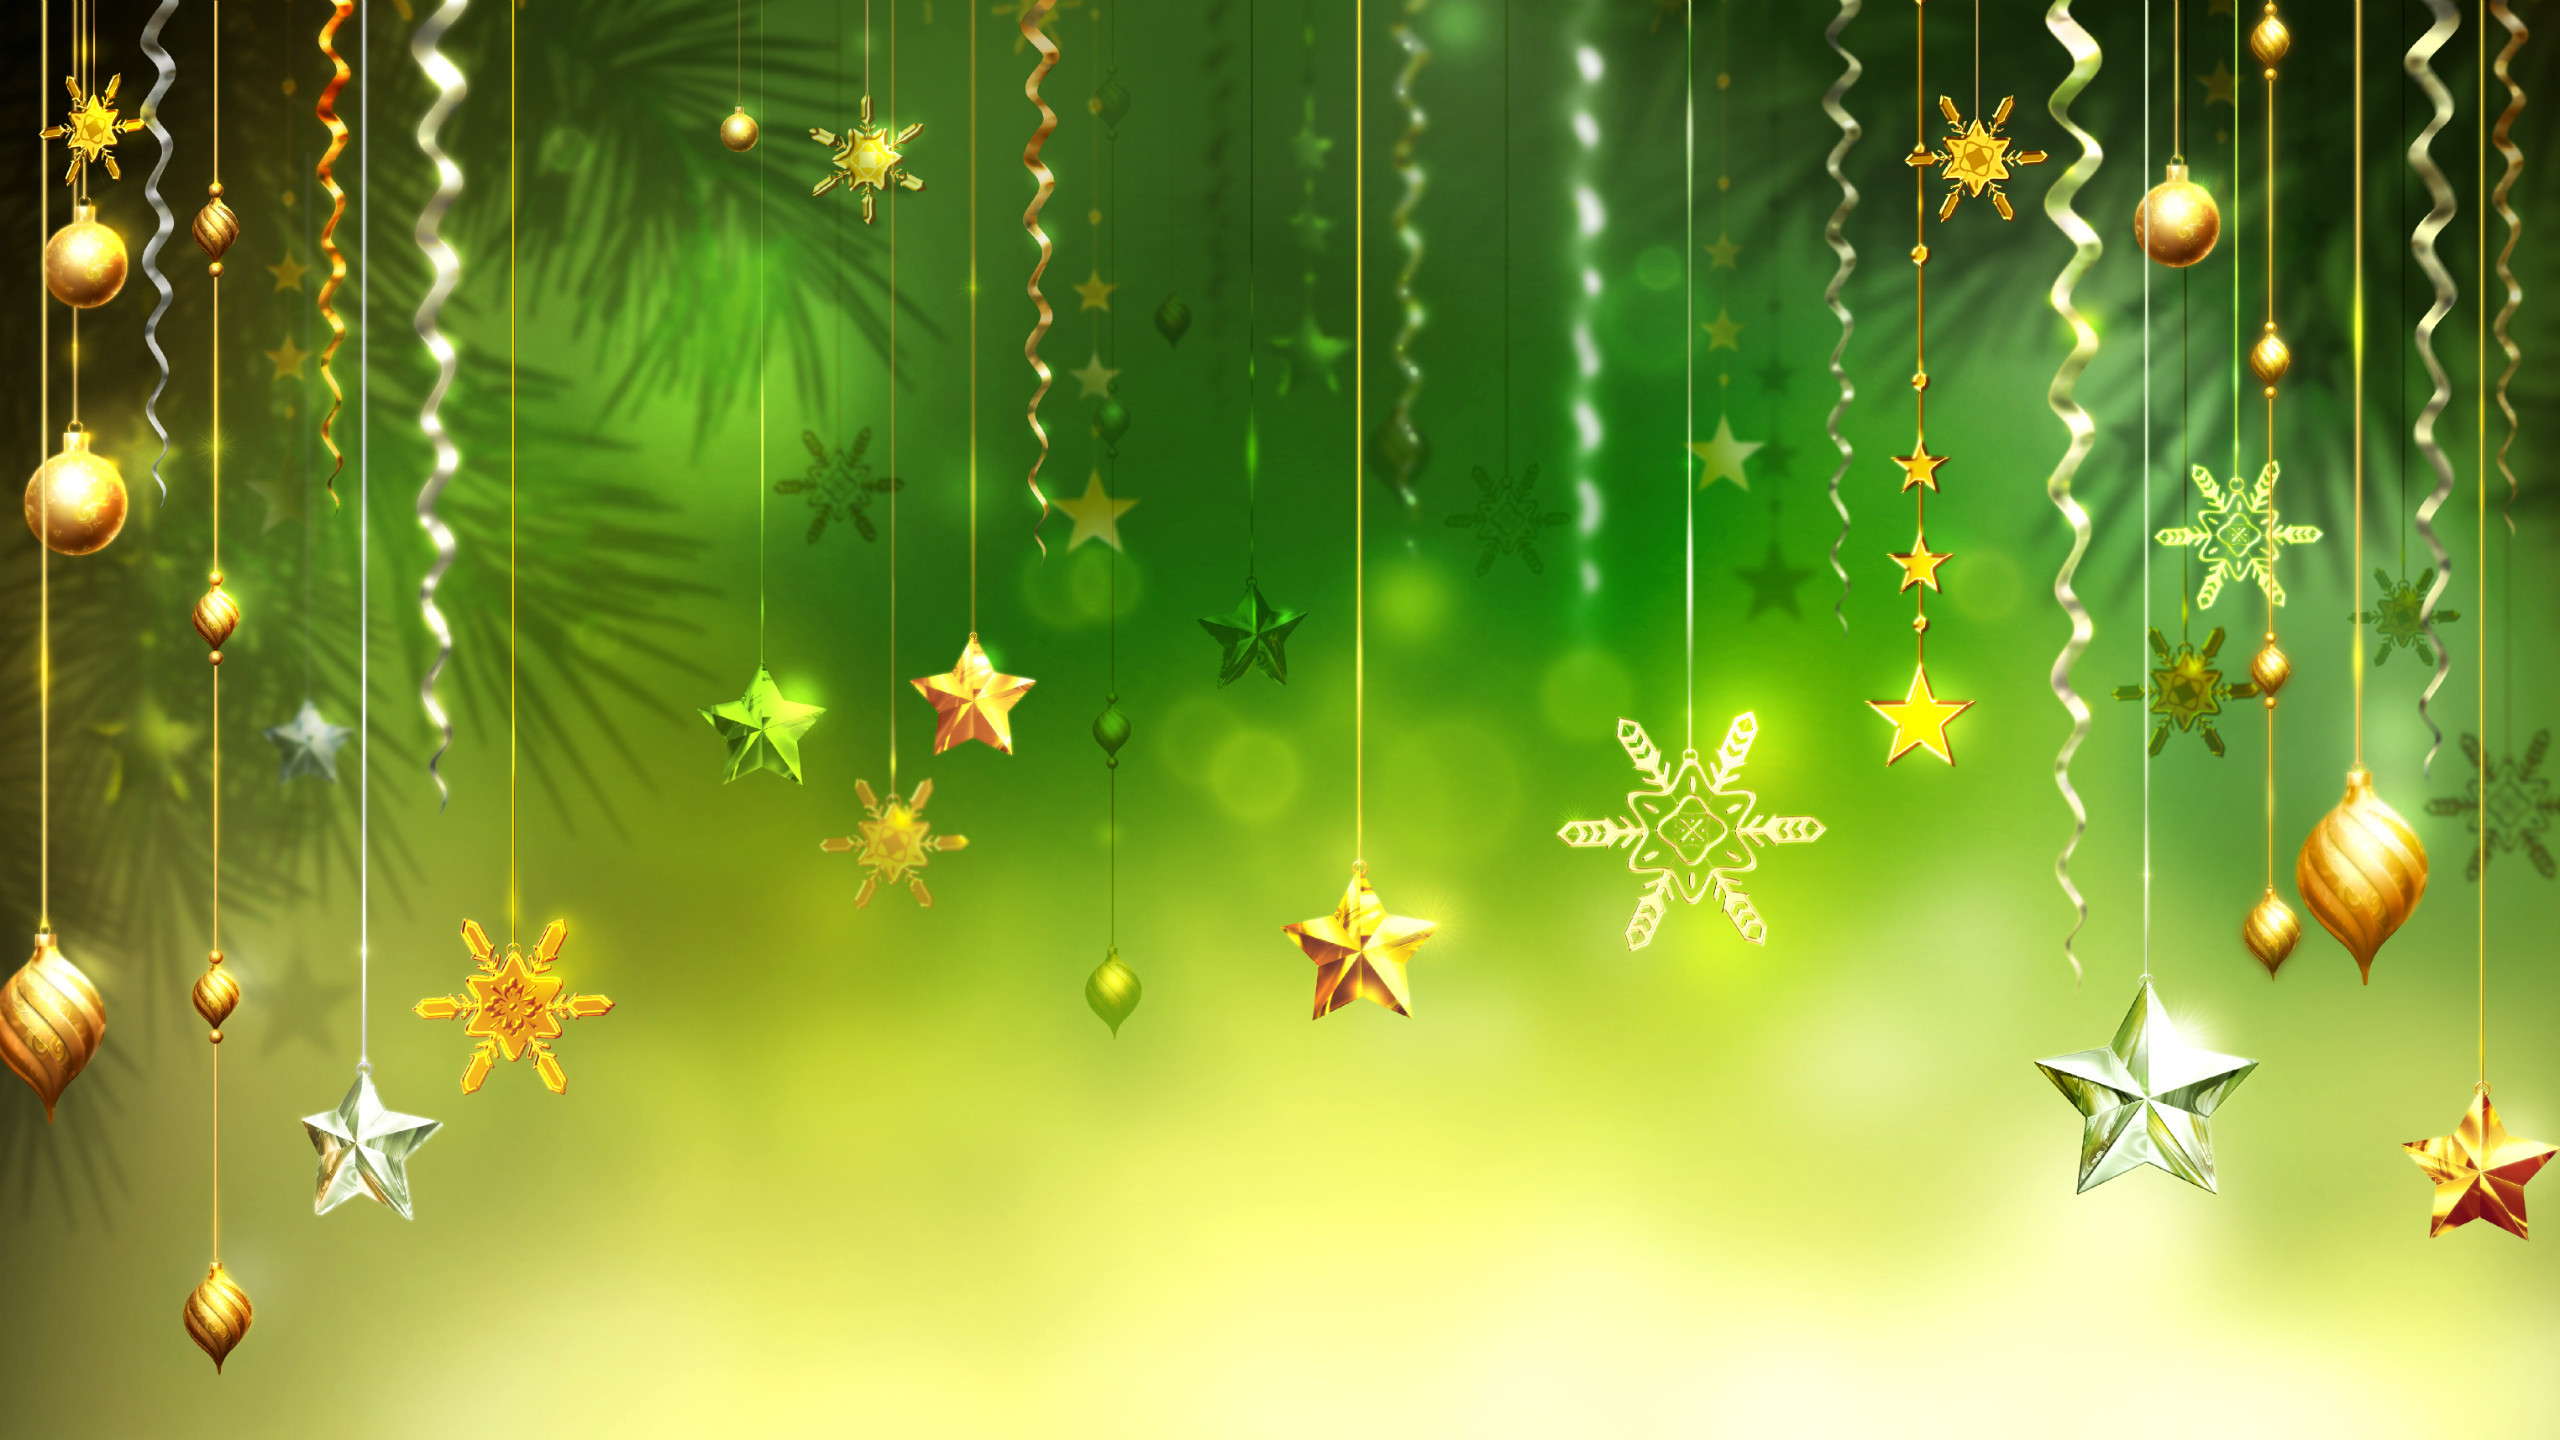 1452640 full size christmas wallpaper the grinch